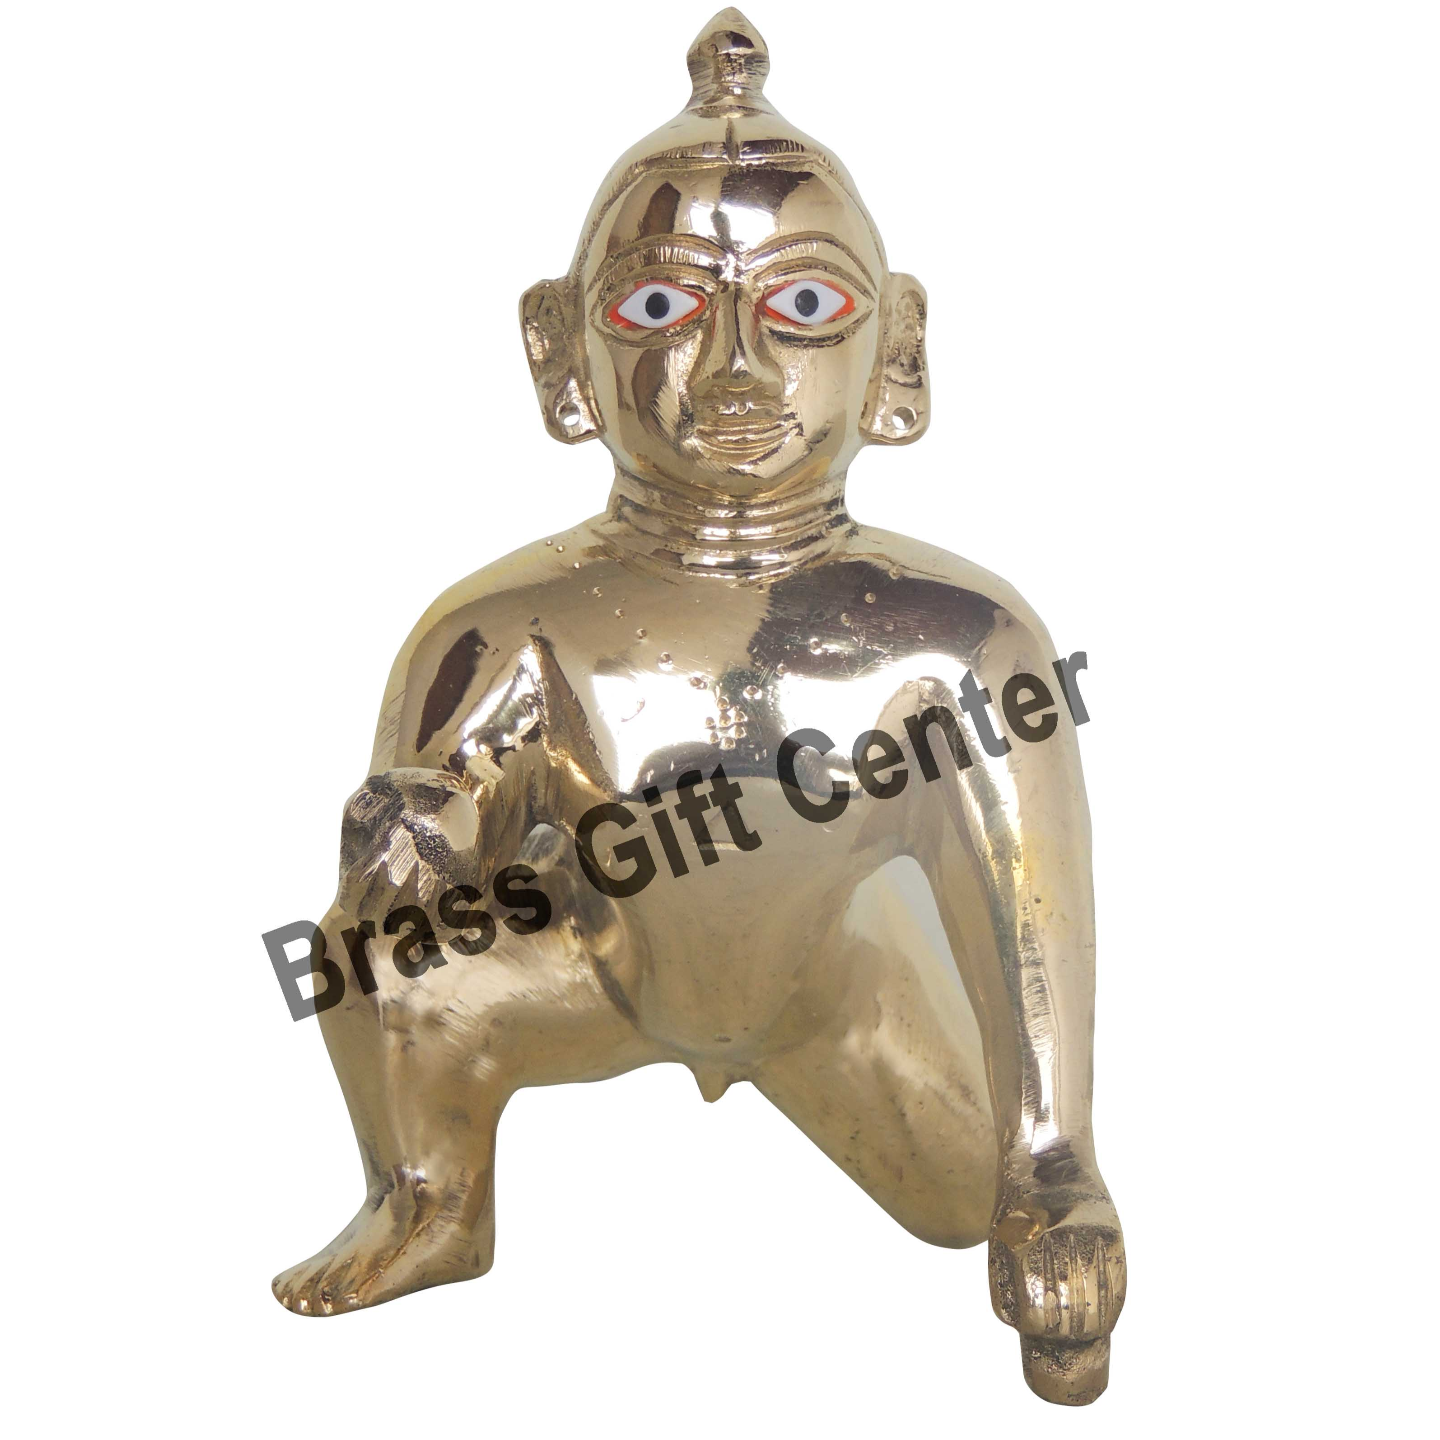 Brass Laddu Gopal God Idol With Brass Finish, Height - 6 Inch BS871 D